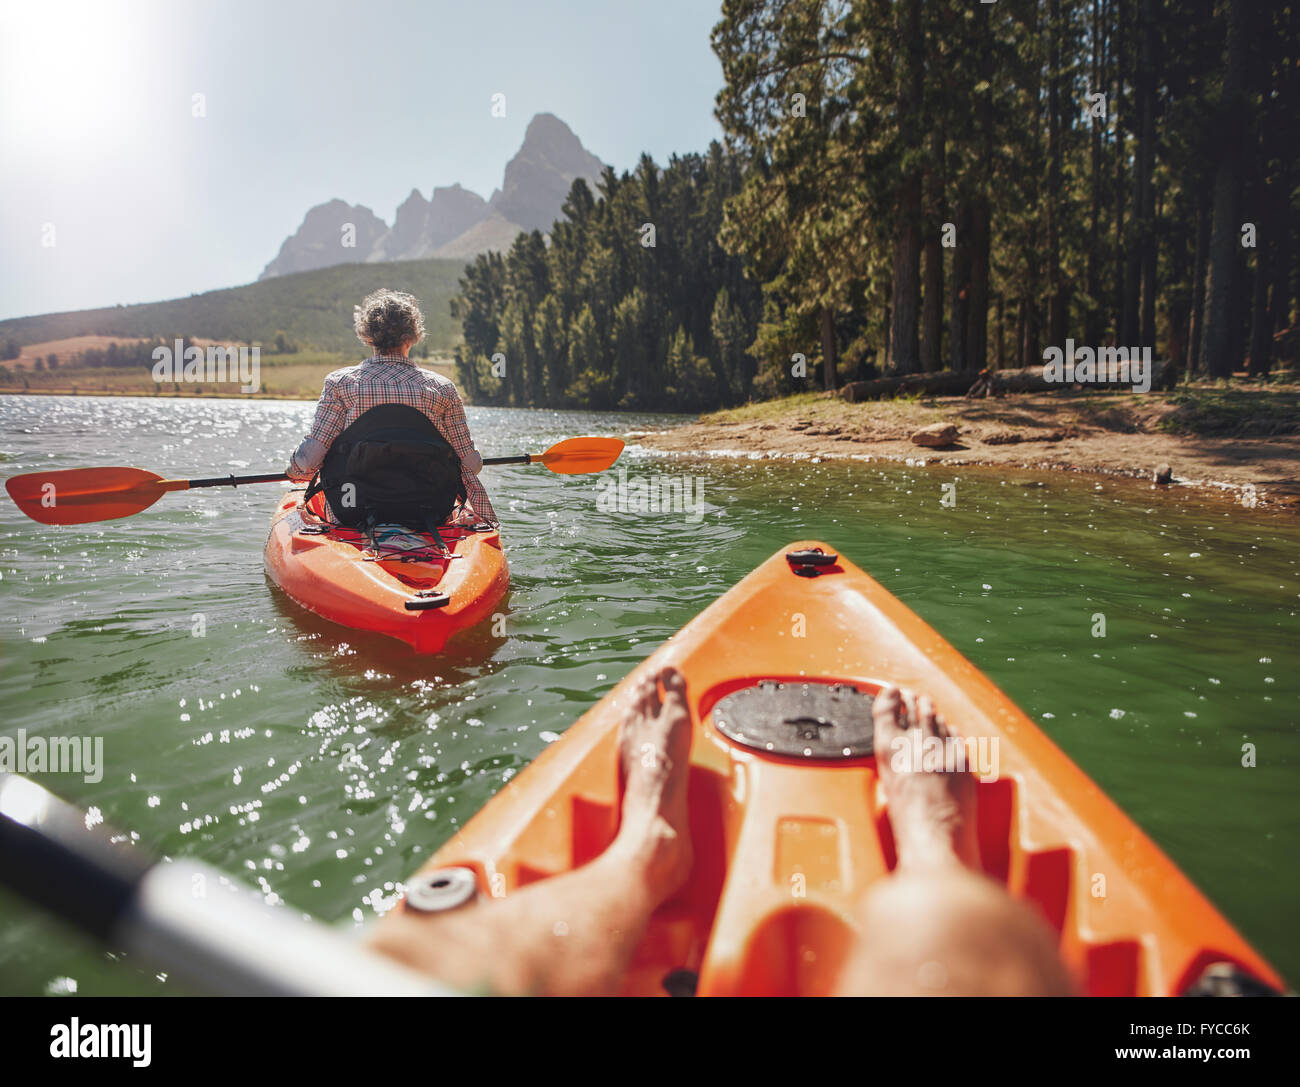 Couple canoeing in the lake on a summer day. Man and woman in two different kayaks in the lake on a sunny day. - Stock Image